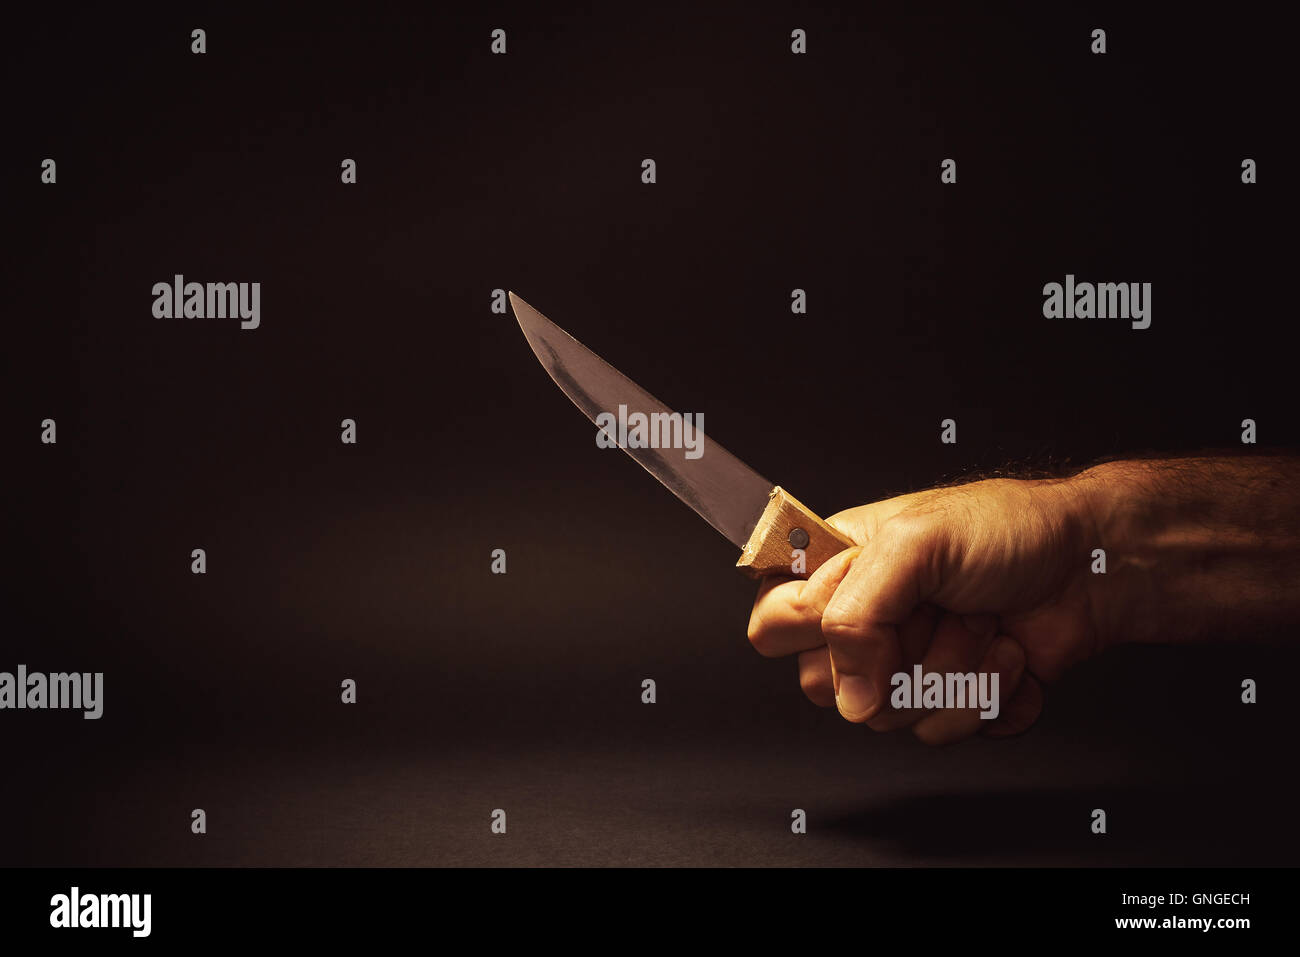 Conceptual composition of a dangerous situation, somebody is holding a knife. - Stock Image